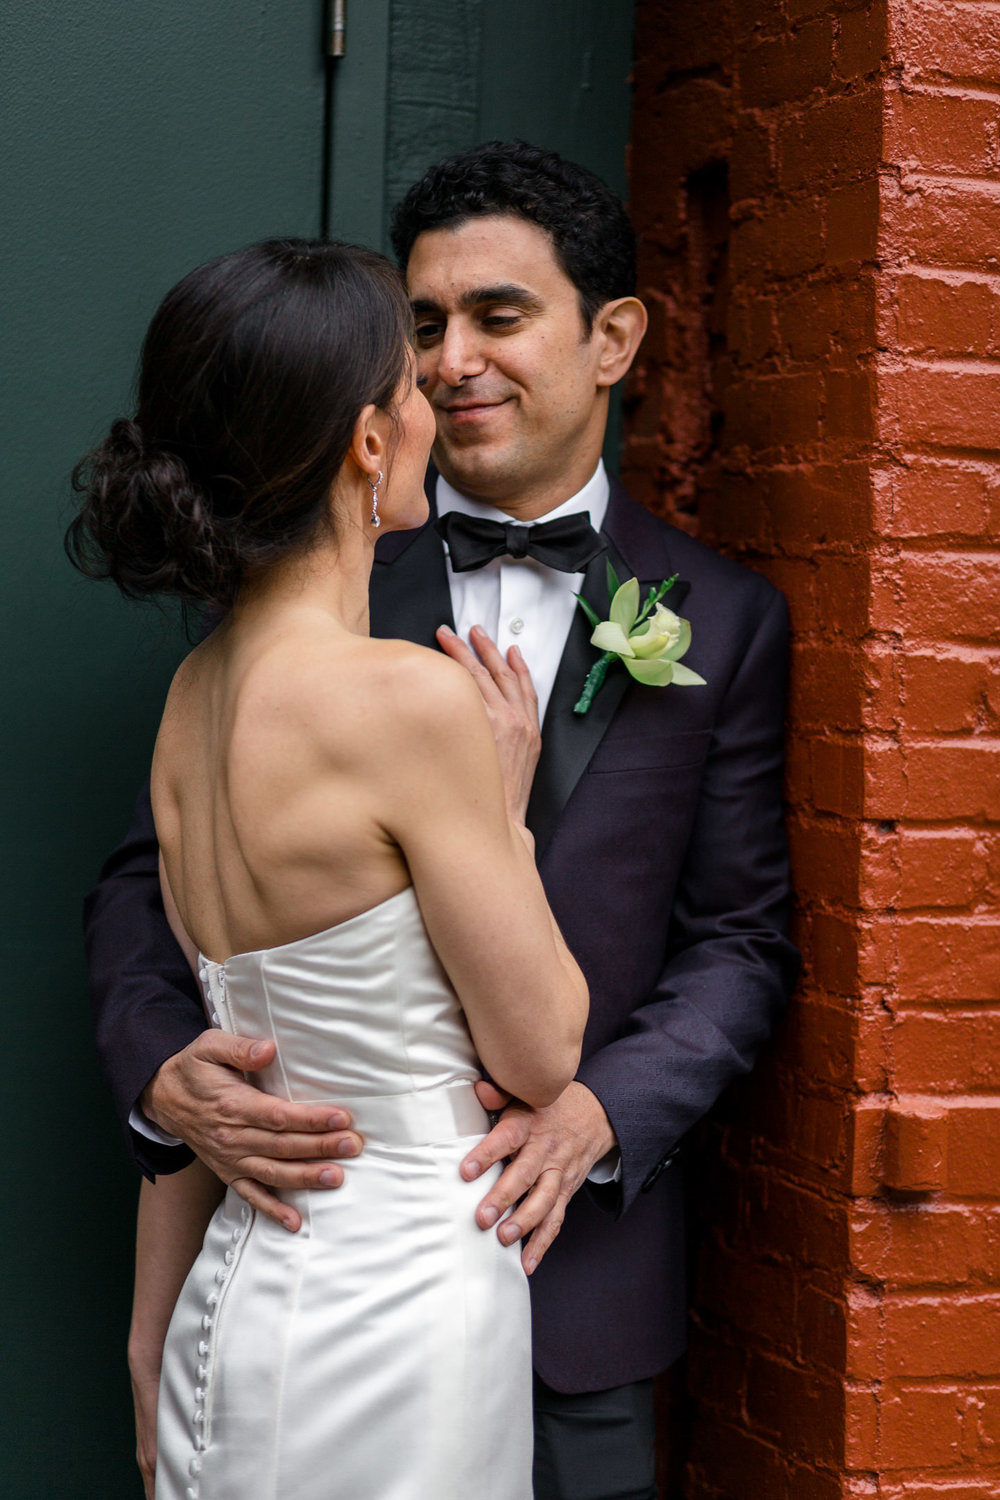 Documentary-Wedding-Photography-Andrew-Tat-Maria & AJ-09.jpg